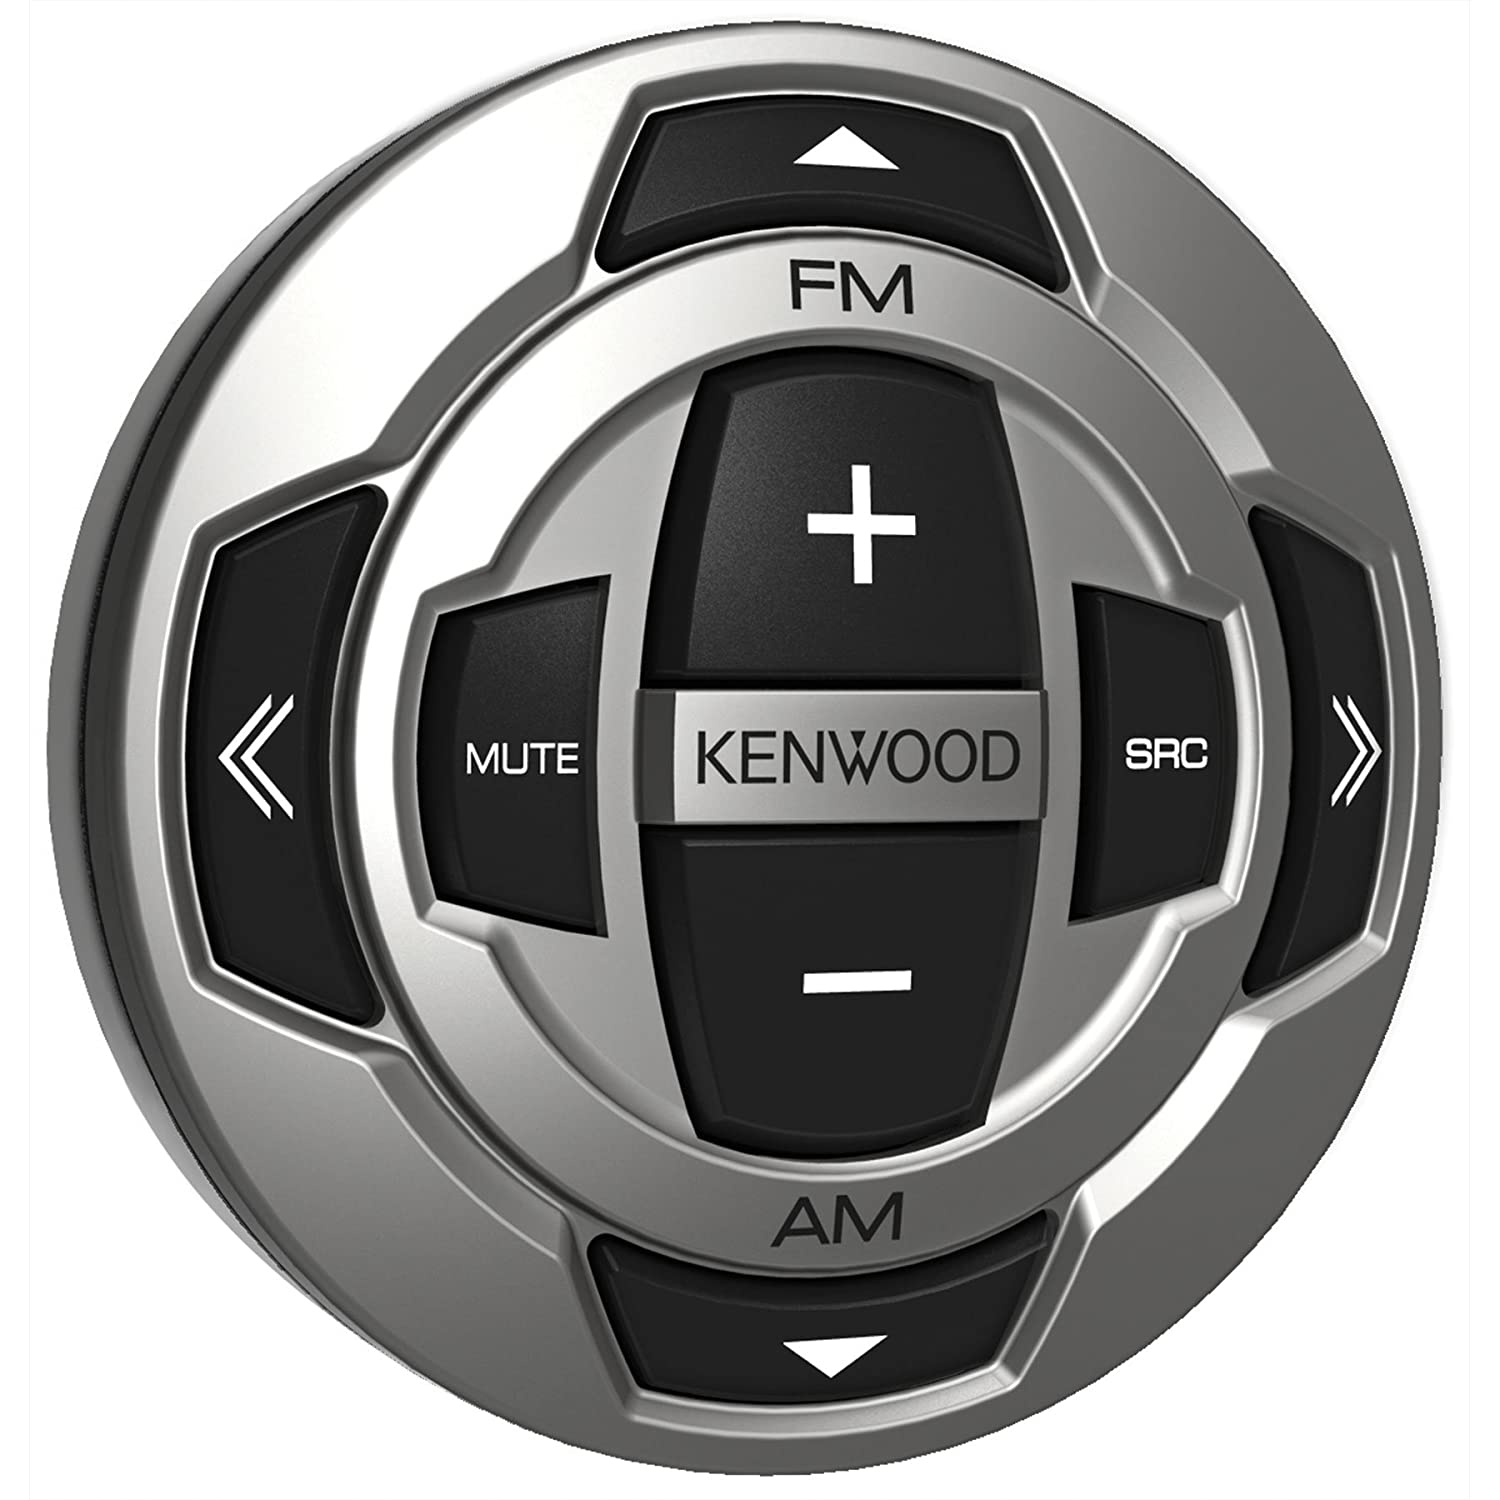 Kenwood Marine Cd Receiver With Wired Remote Kmr D358 Wiring Harness Enrock Charcoal Loudspeakers 3 Pairs Antenna